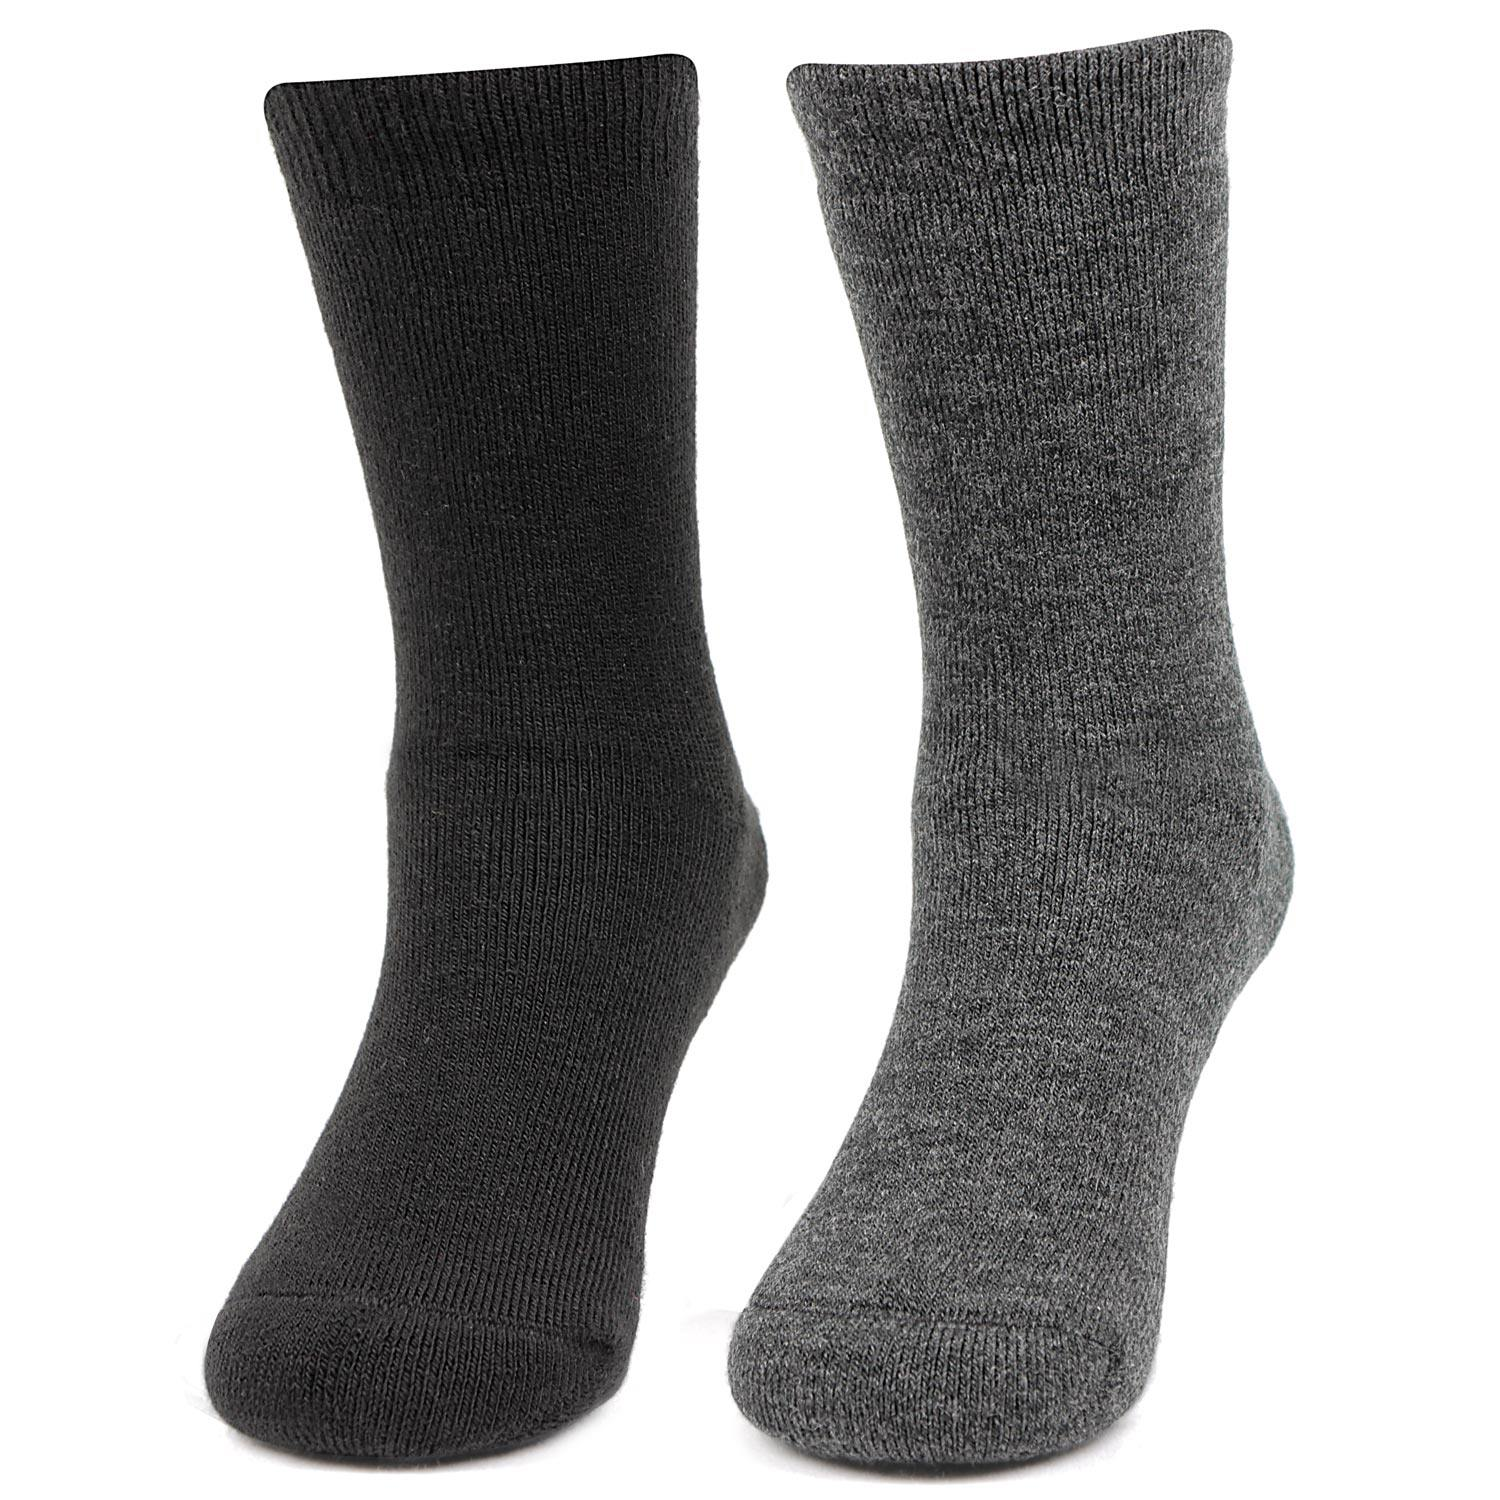 Kids Plain Multicoloured Woolen Crew Socks- Pack of 2